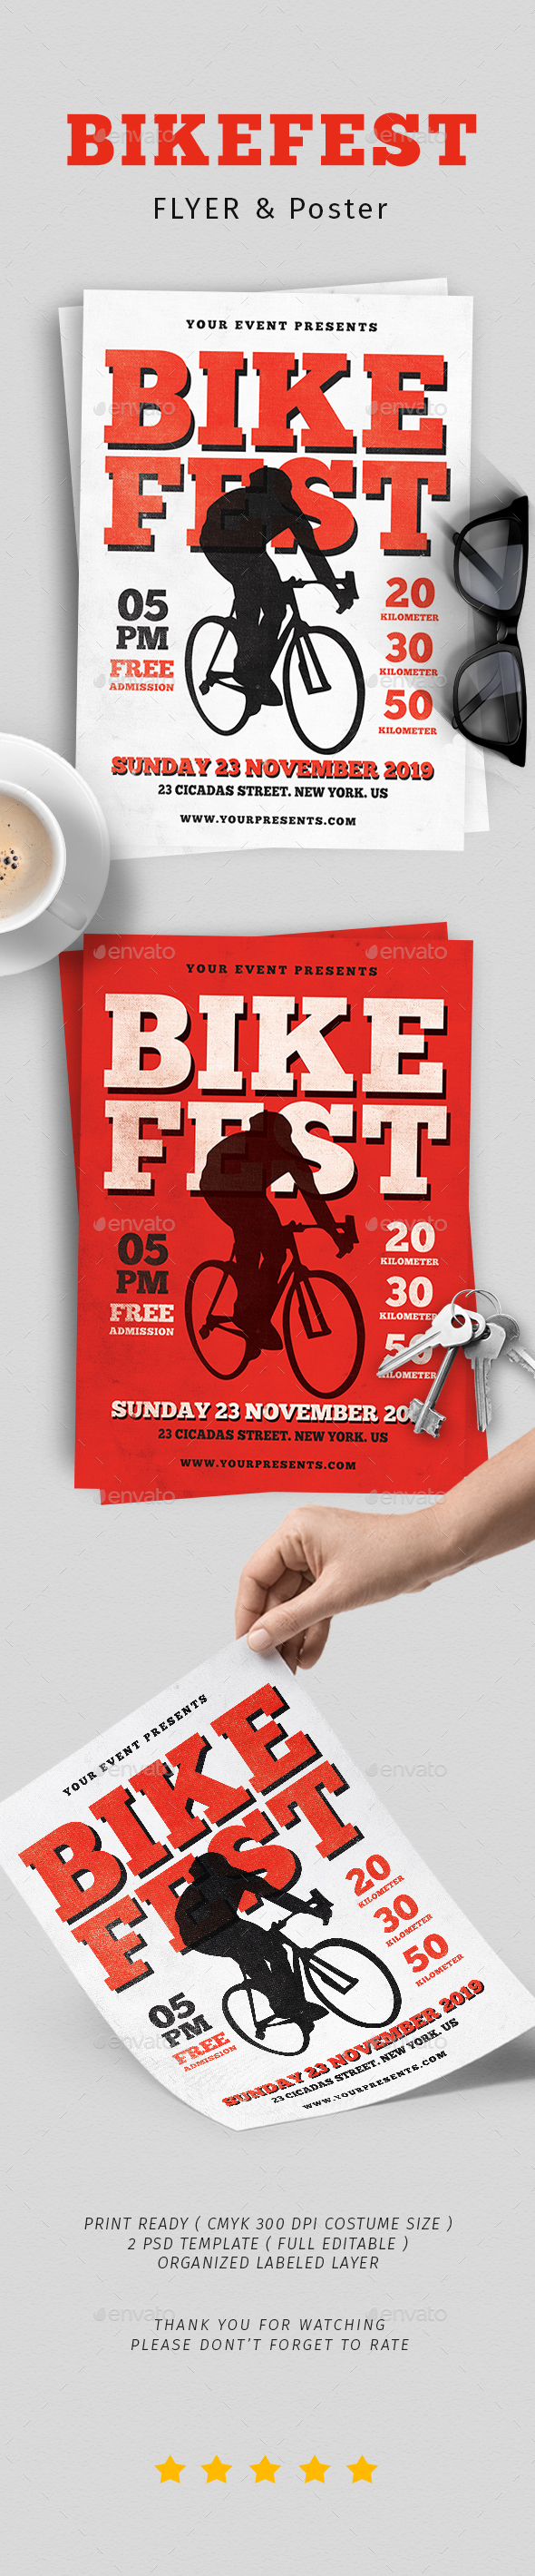 Bike Fest Flyer - Flyers Print Templates